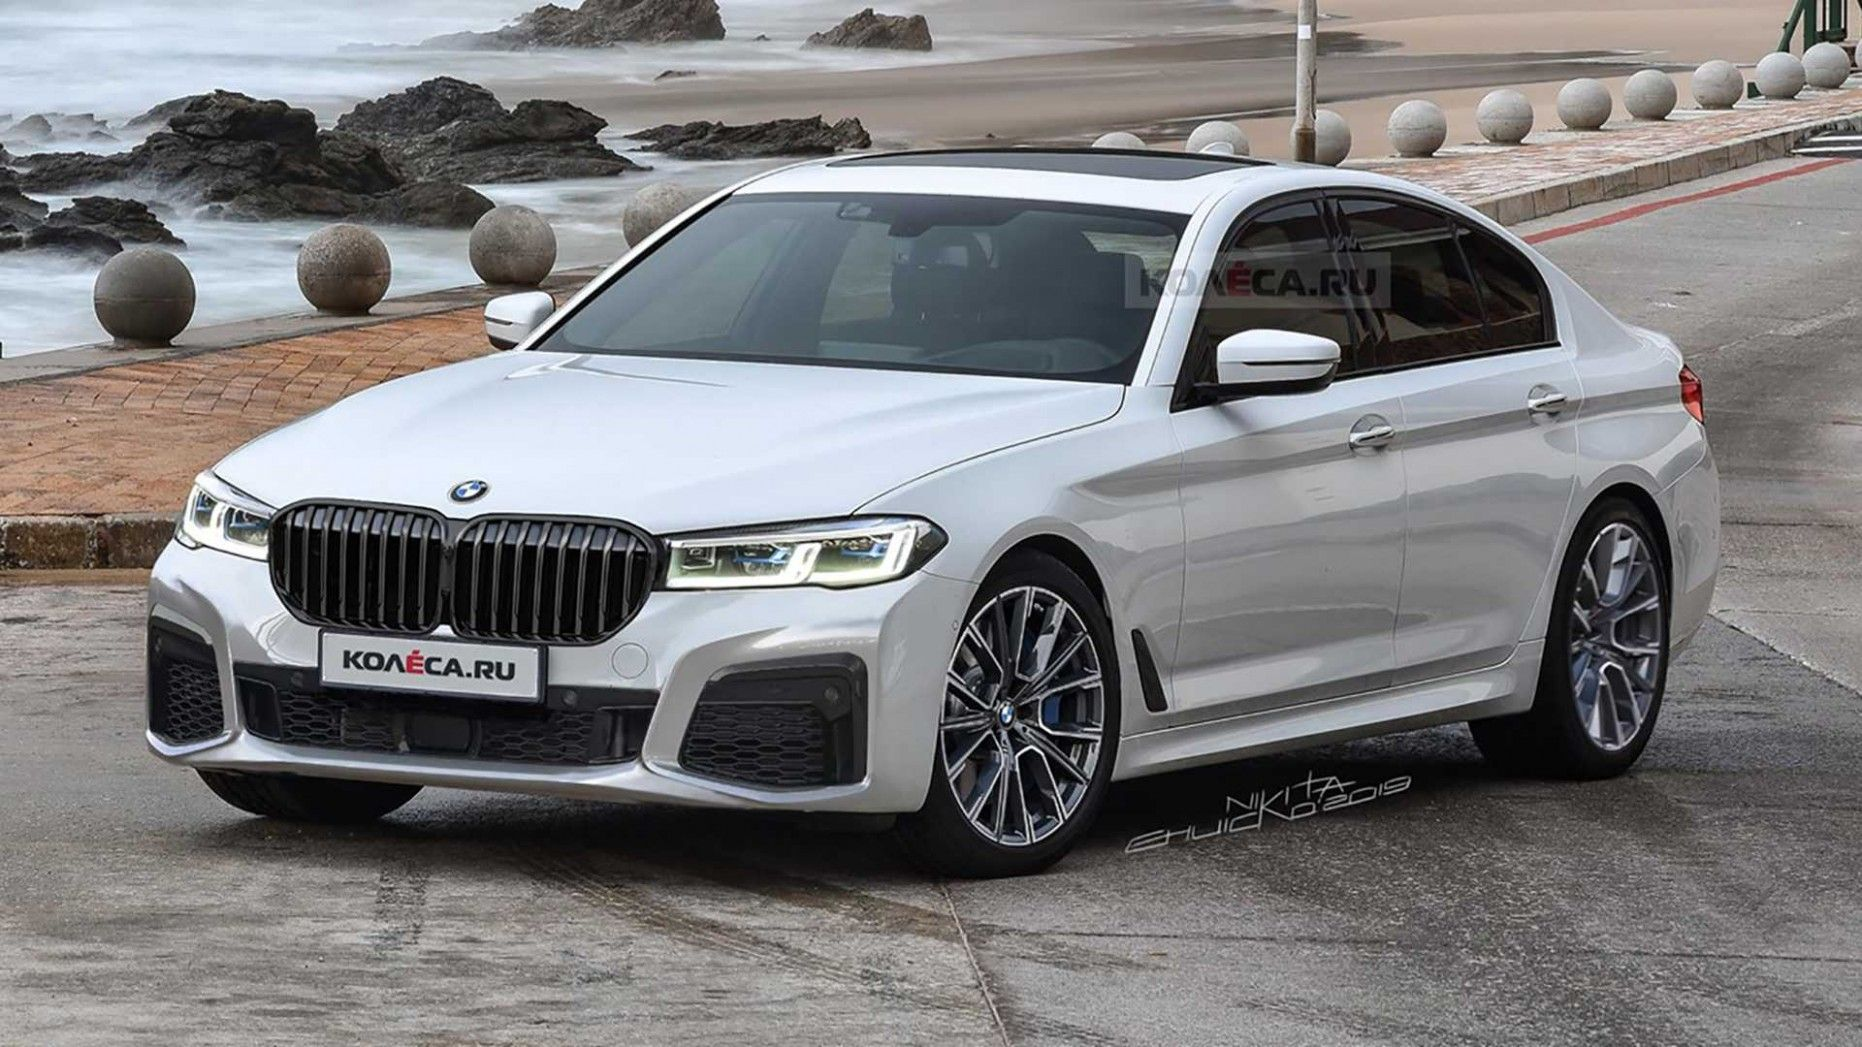 2021 Bmw 5 Series In 2020 Bmw 5 Series Bmw New Bmw 5 Series